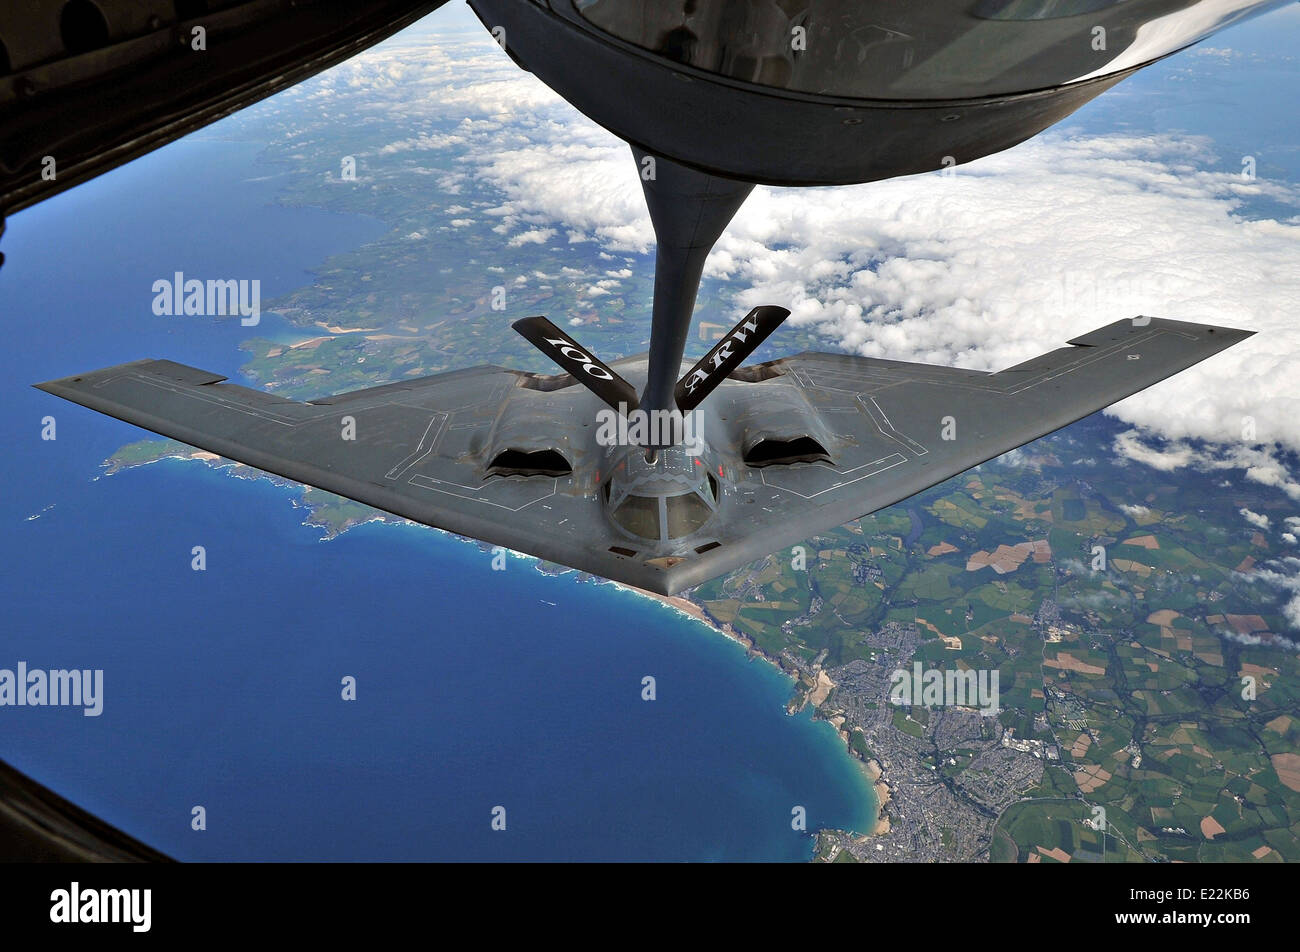 A US Air Force B-2 Spirit stealth strategic bomber during an aerial refueling June 11, 2014 over Cornwall, England. - Stock Image